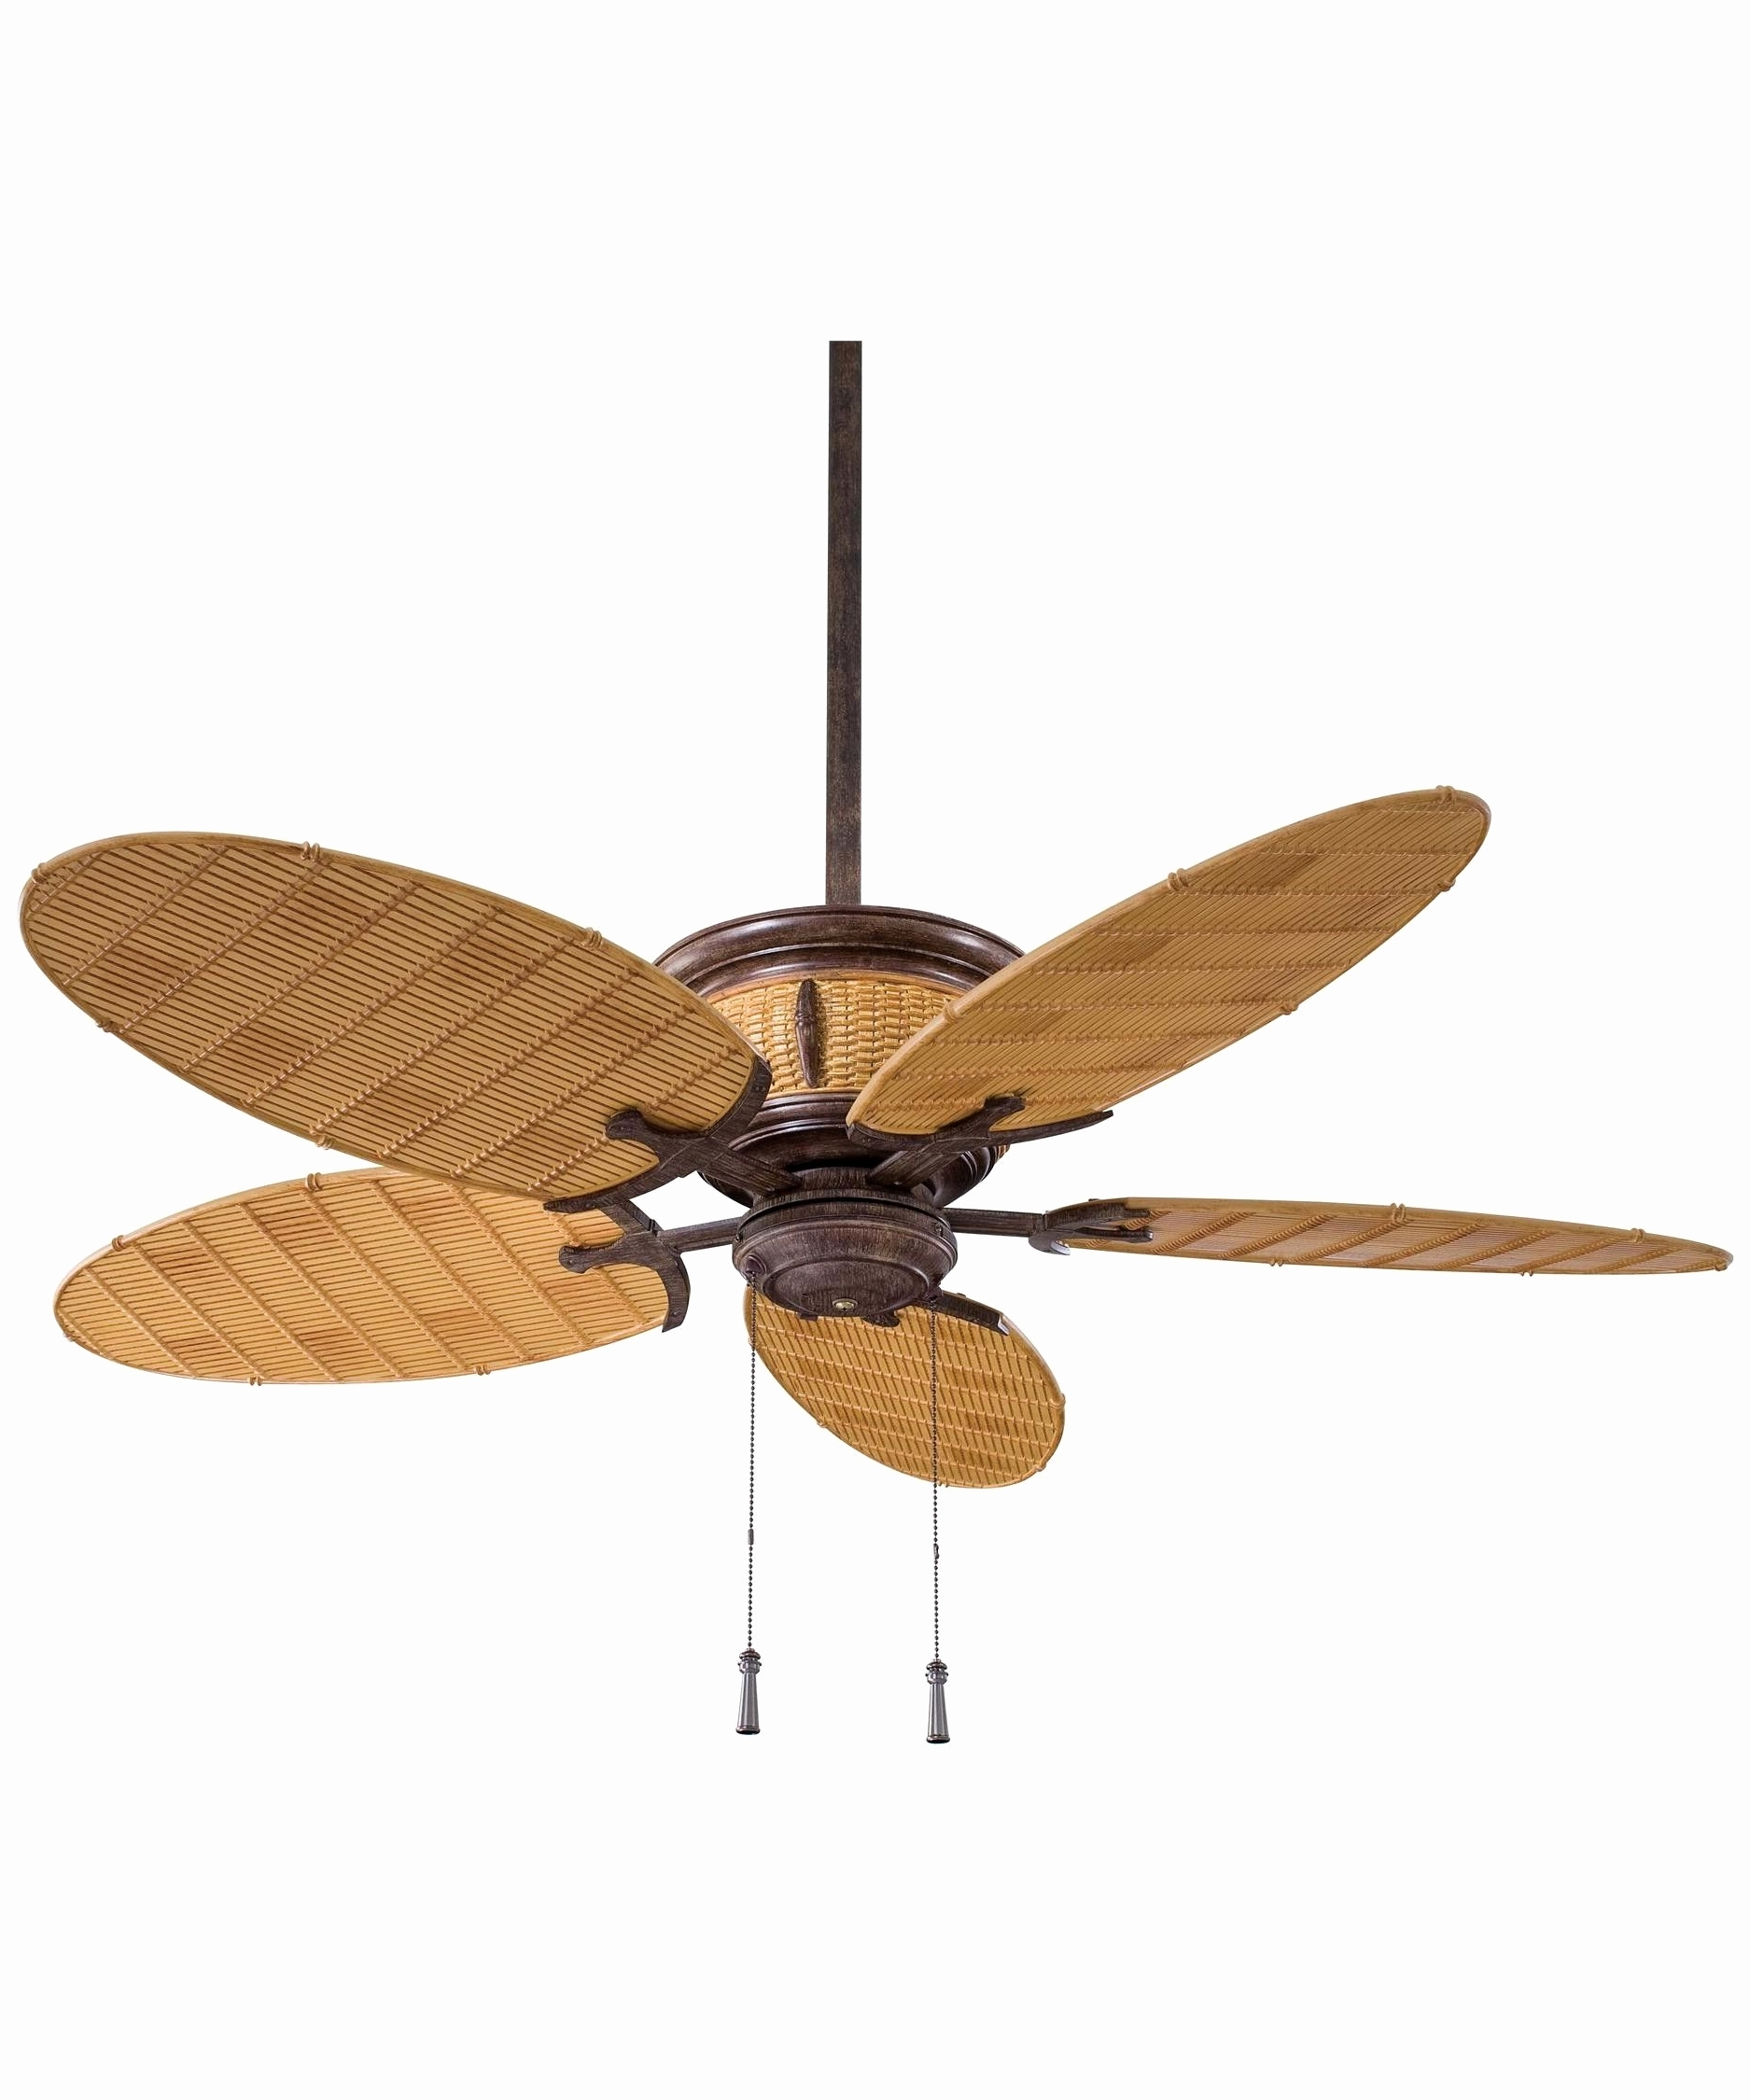 Outdoor Ceiling Fans For Gazebo Throughout Best And Newest Outdoor Ceiling Fan For Gazebo Lovely Great Outdoor Fan Home Depot (View 13 of 20)